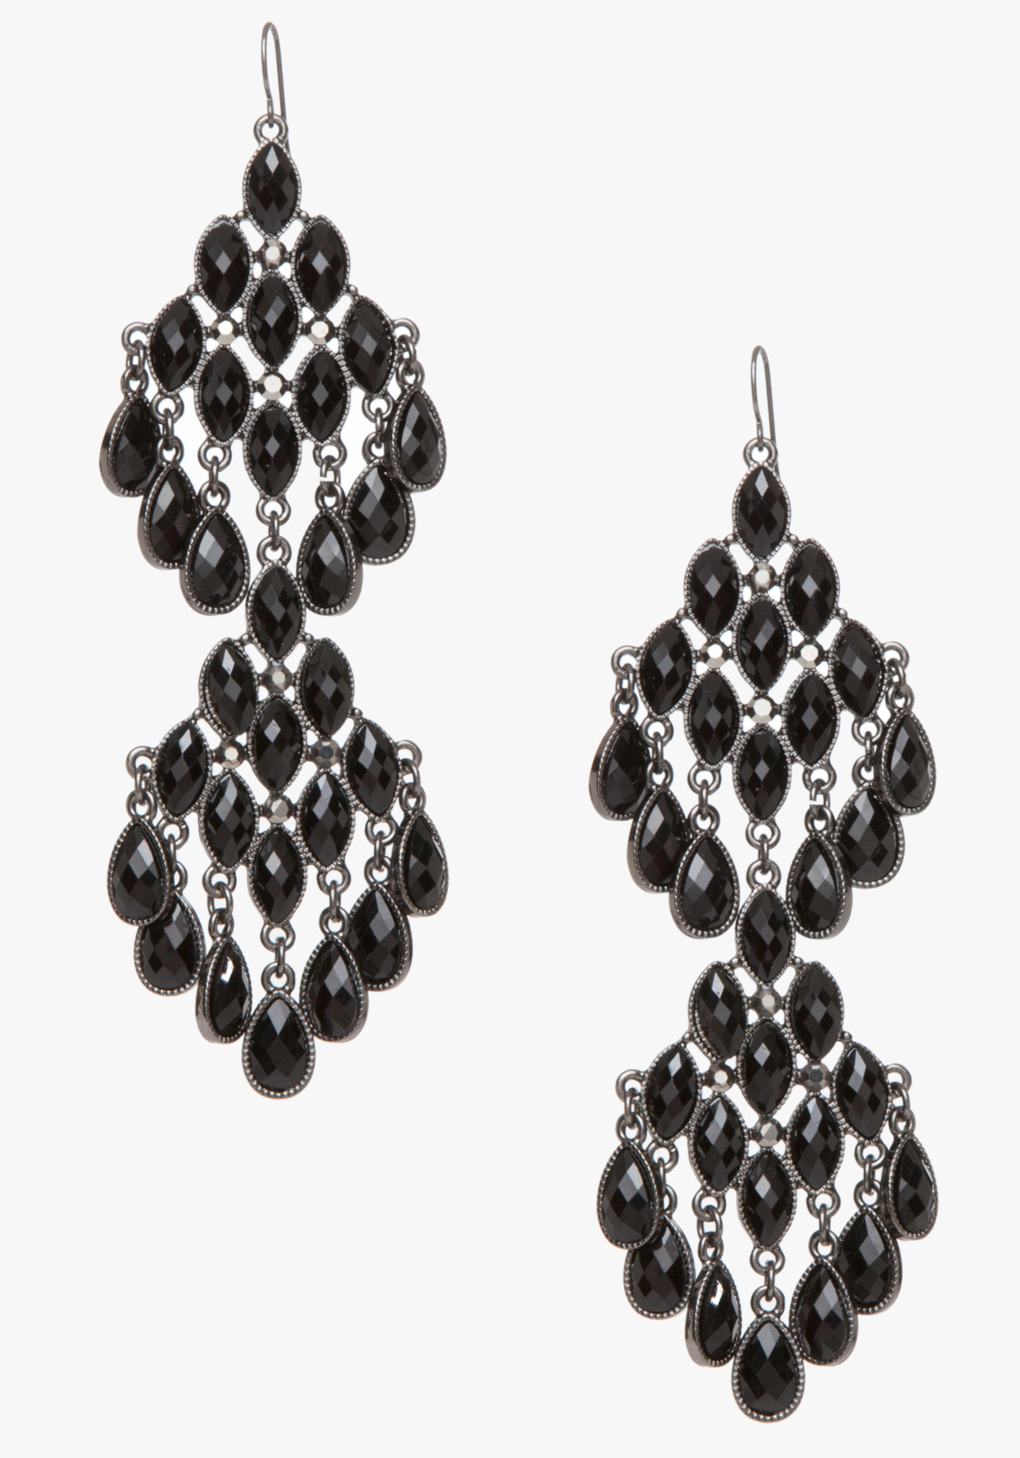 Bebe Faceted Stone Chandelier Earrings in Black | Lyst